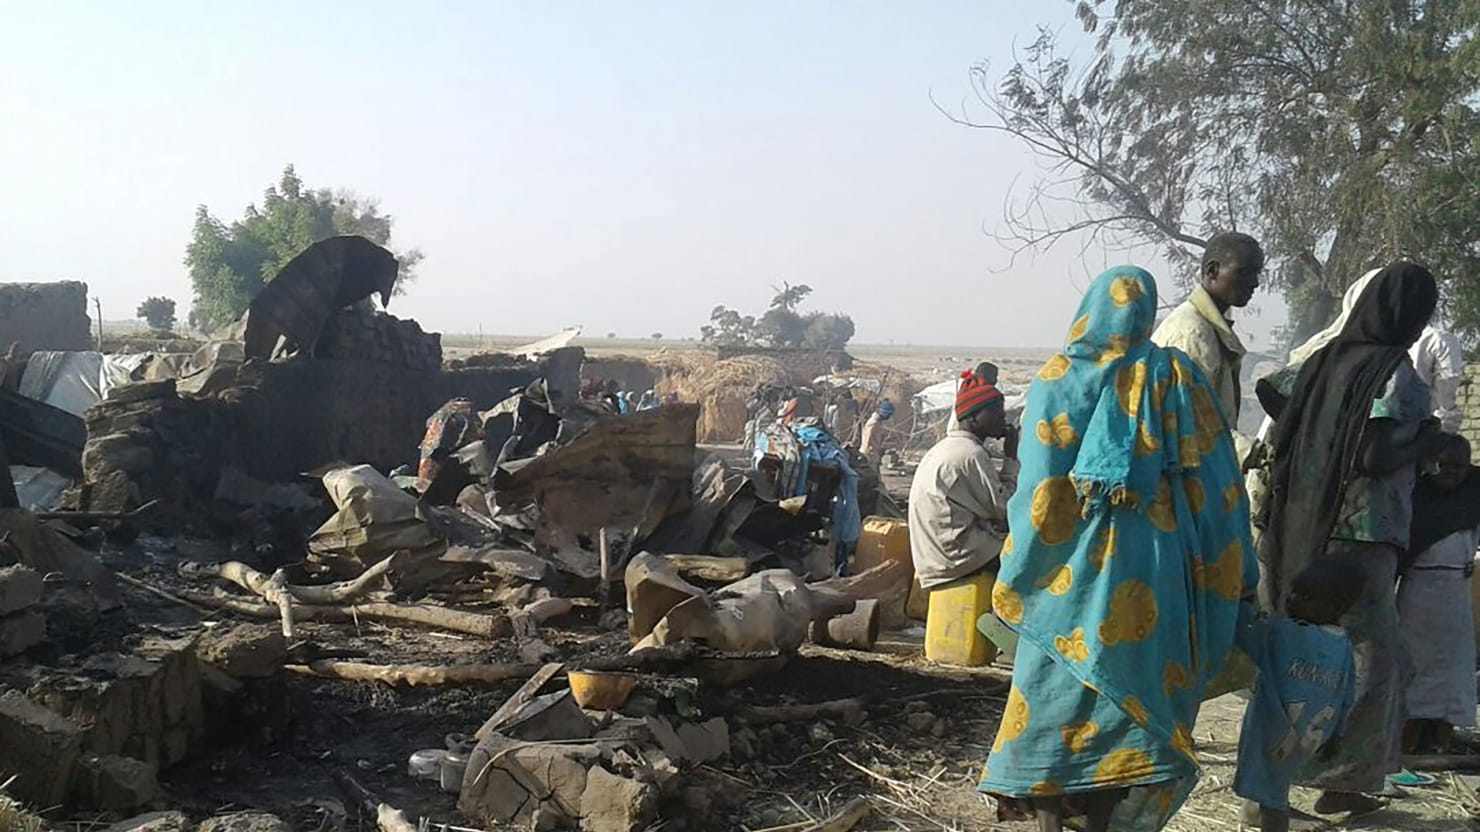 Boko Haram Suicide Squads Include Little Boys, Girls, and Now Babies